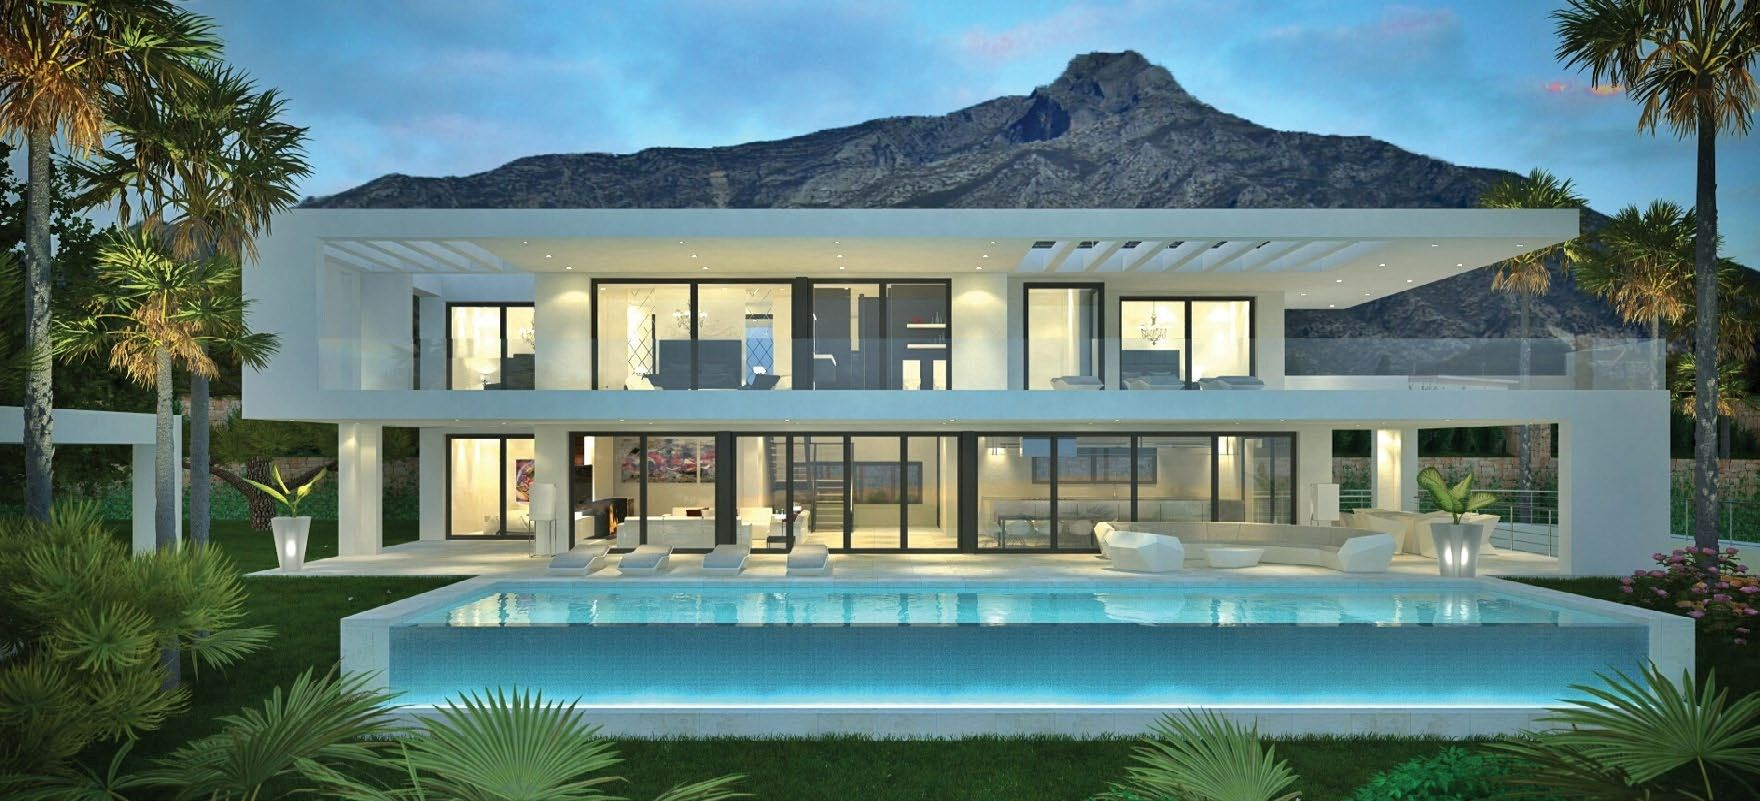 MODERN VILLAS MARBELLA | House & Home | Pinterest | Villas ...